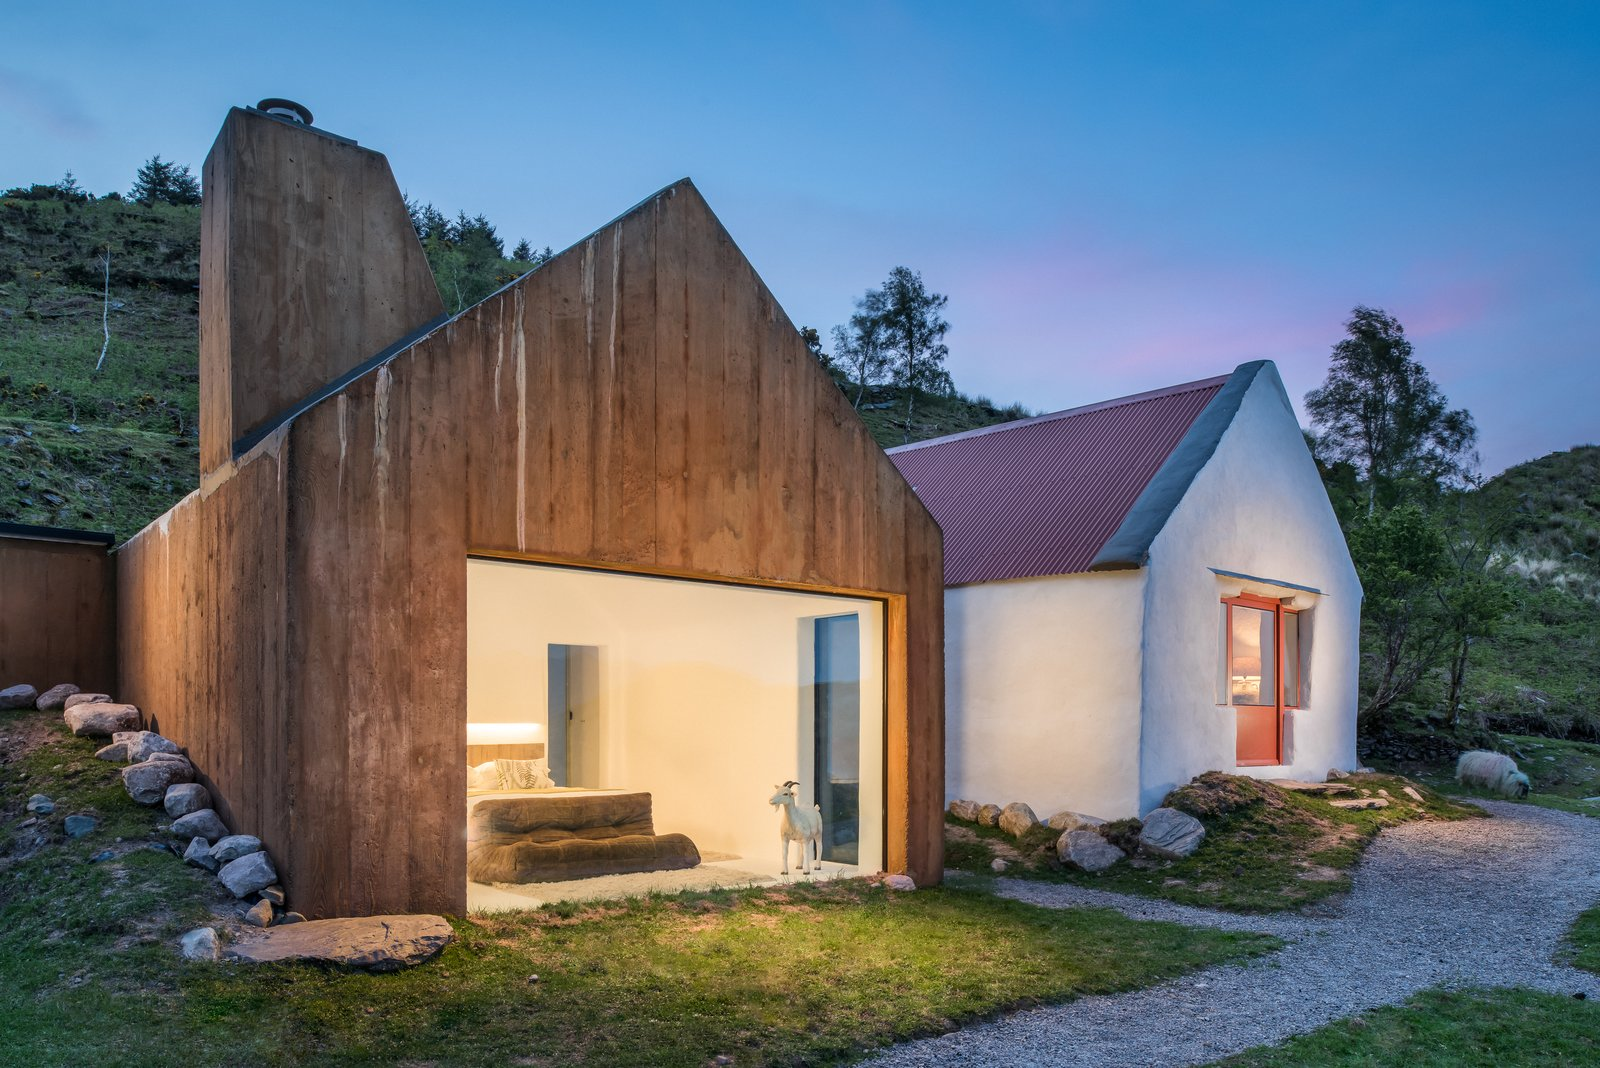 Exterior, Cabin Building Type, Wood Siding Material, Gable RoofLine, and Stucco Siding Material  Photo 1 of 14 in 7 Vacation Rentals in Ireland That Put a Spin on the Classic Cottage